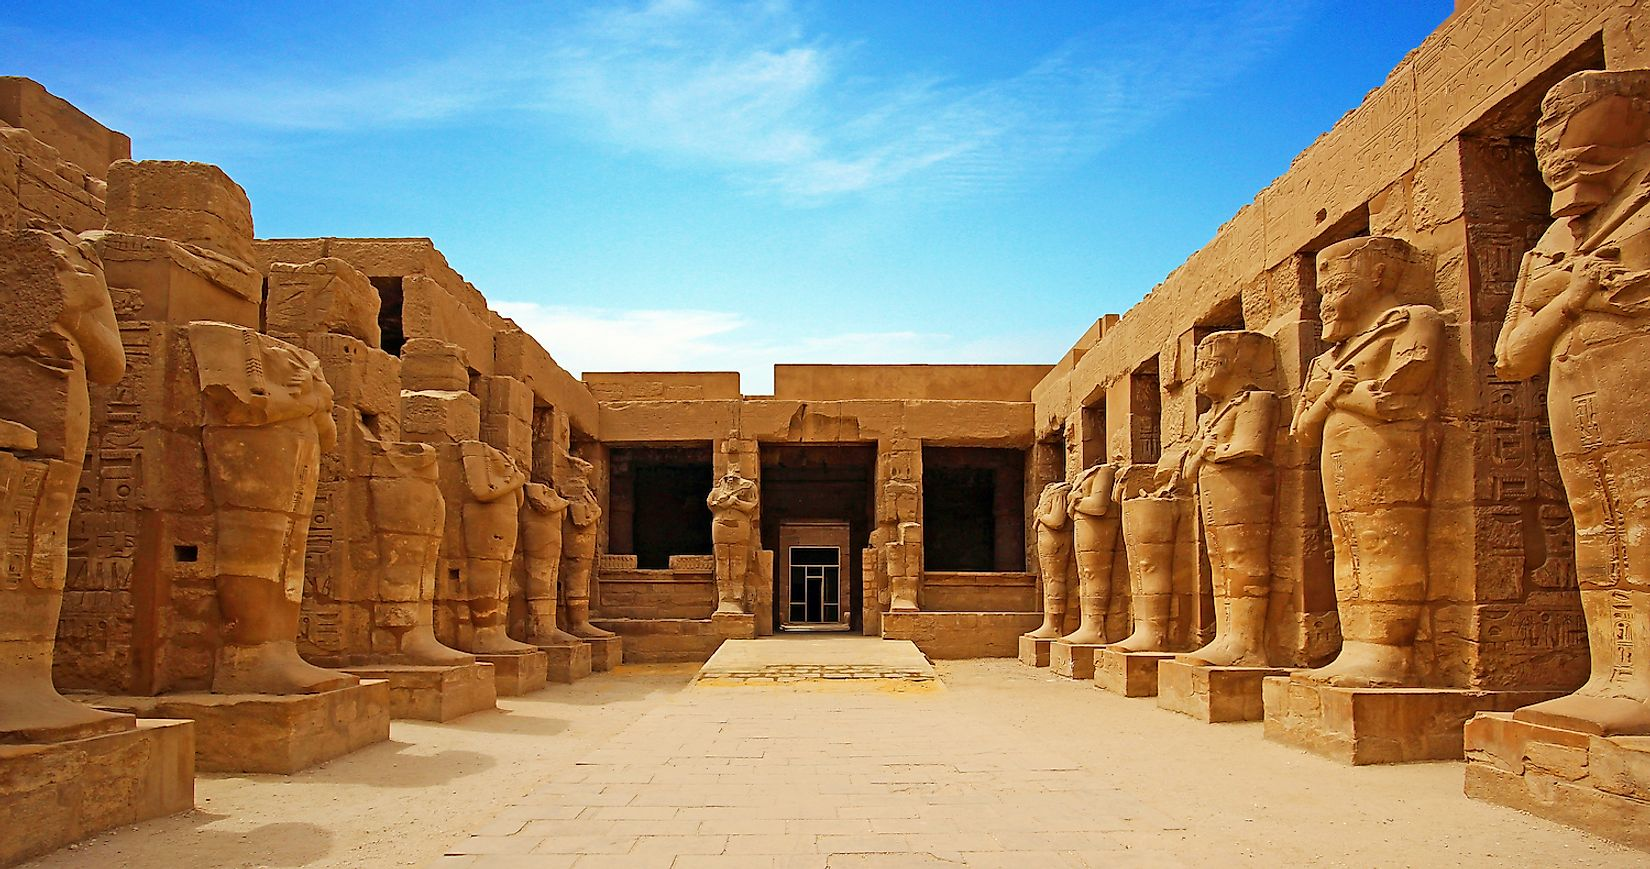 Ancient ruins of Karnak temple in Luxor. Egypt. Image credit: Zbigniew Guzowski/Shutterstock.com